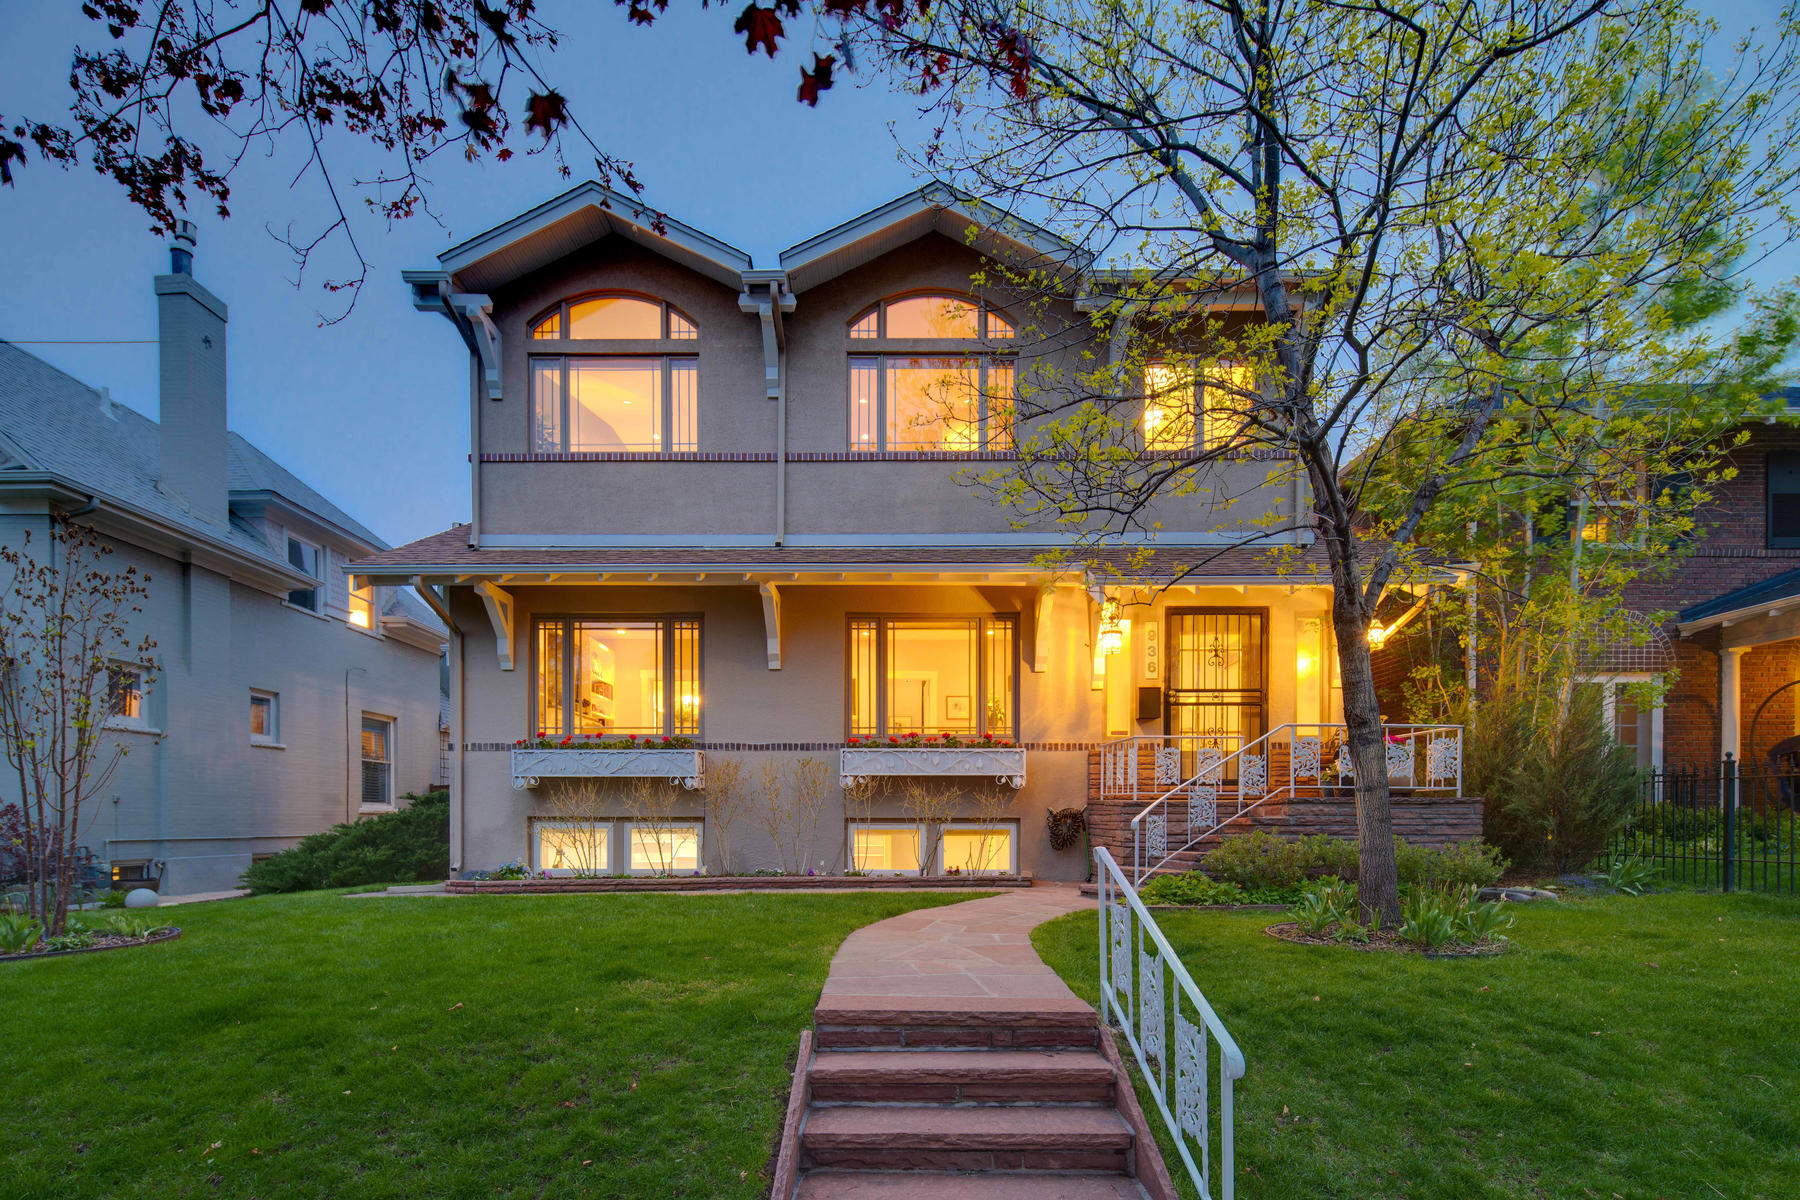 Single Family Homes для того Продажа на Amazing opportunity on one of the best blocks in Congress Park 936 Detroit Street, Denver, Колорадо 80206 Соединенные Штаты